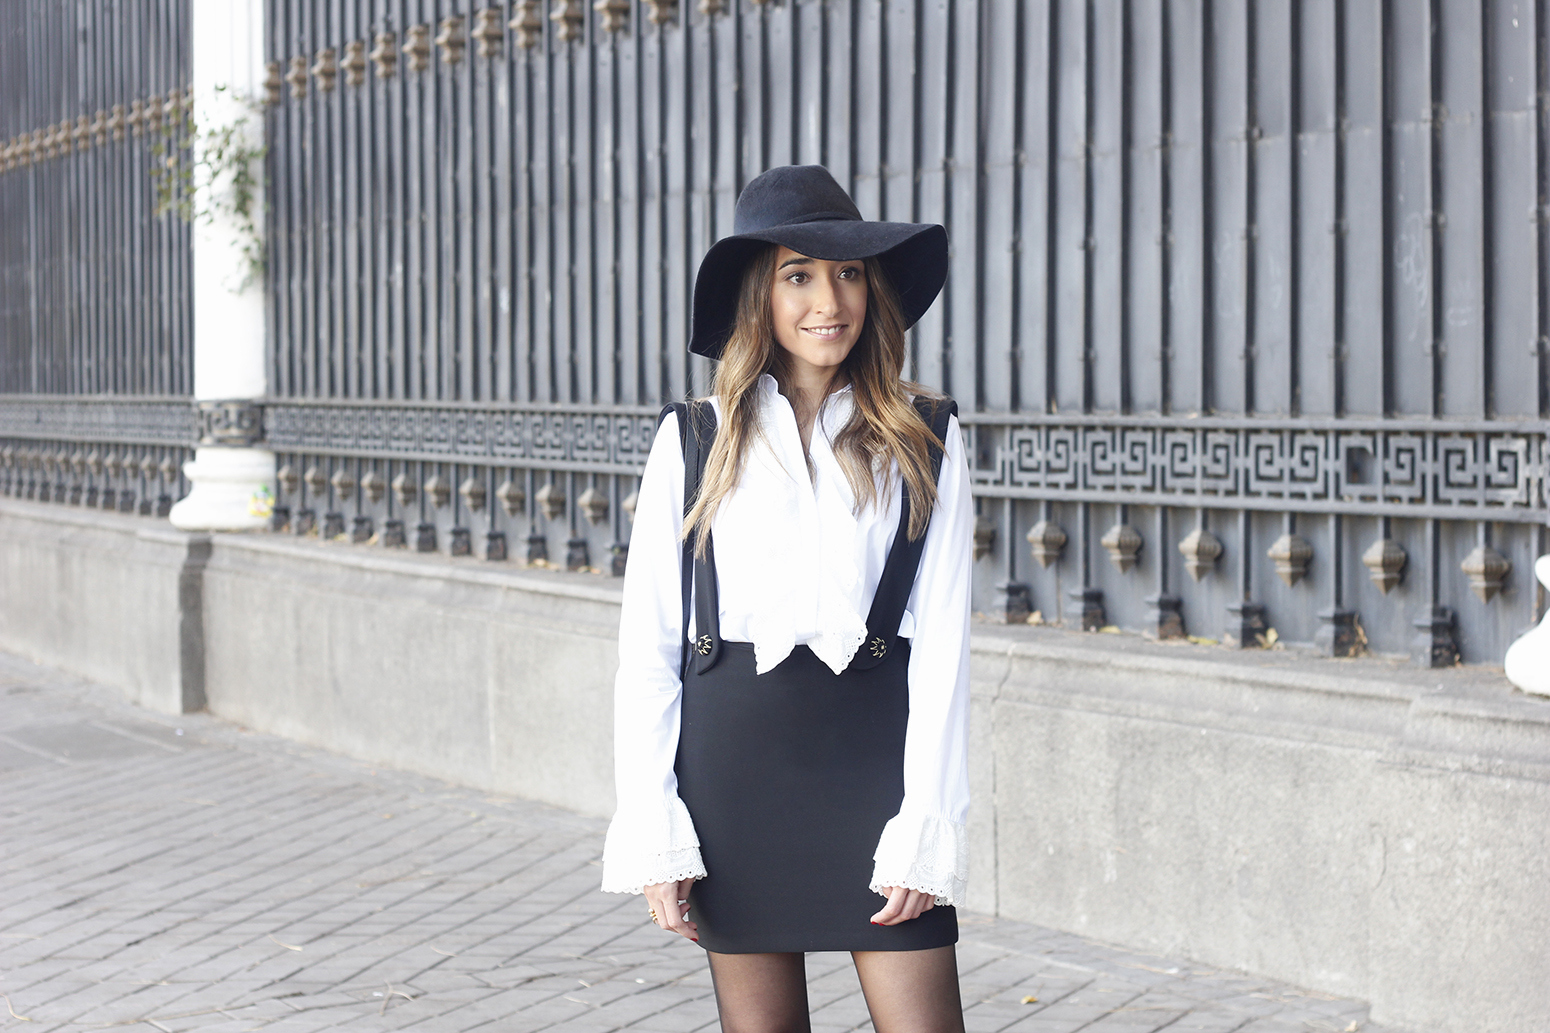 black skirt white shirt black and white outfit trend inspiration hat style fall look blanco y negro05